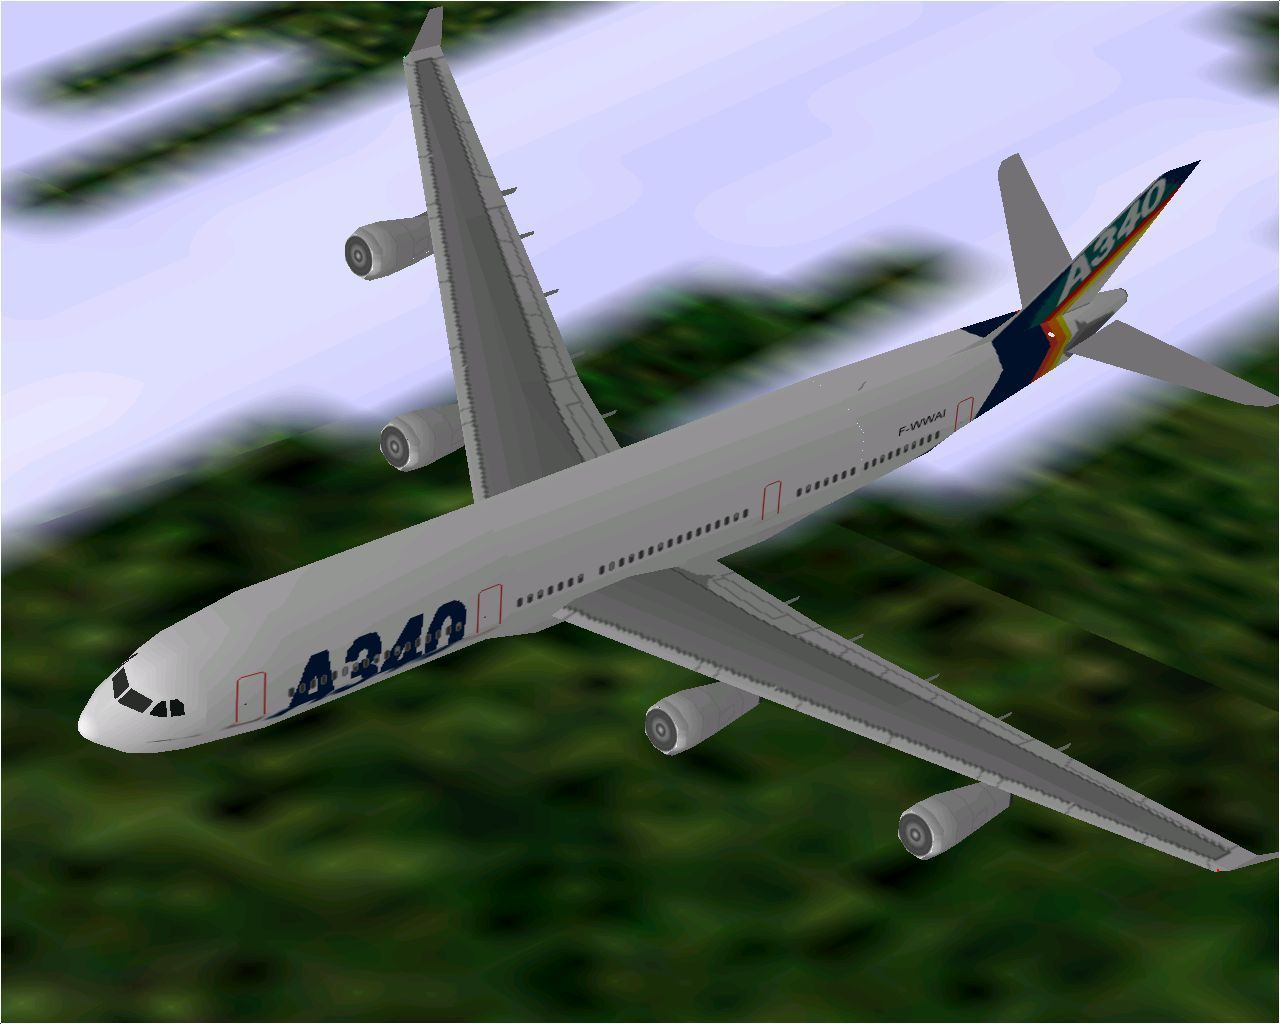 Airbus 2000: Special Edition Windows Airbus Industrie's A340-300 in Microsoft Flight Simulator 98. This is another aircraft that's calibrated without payload